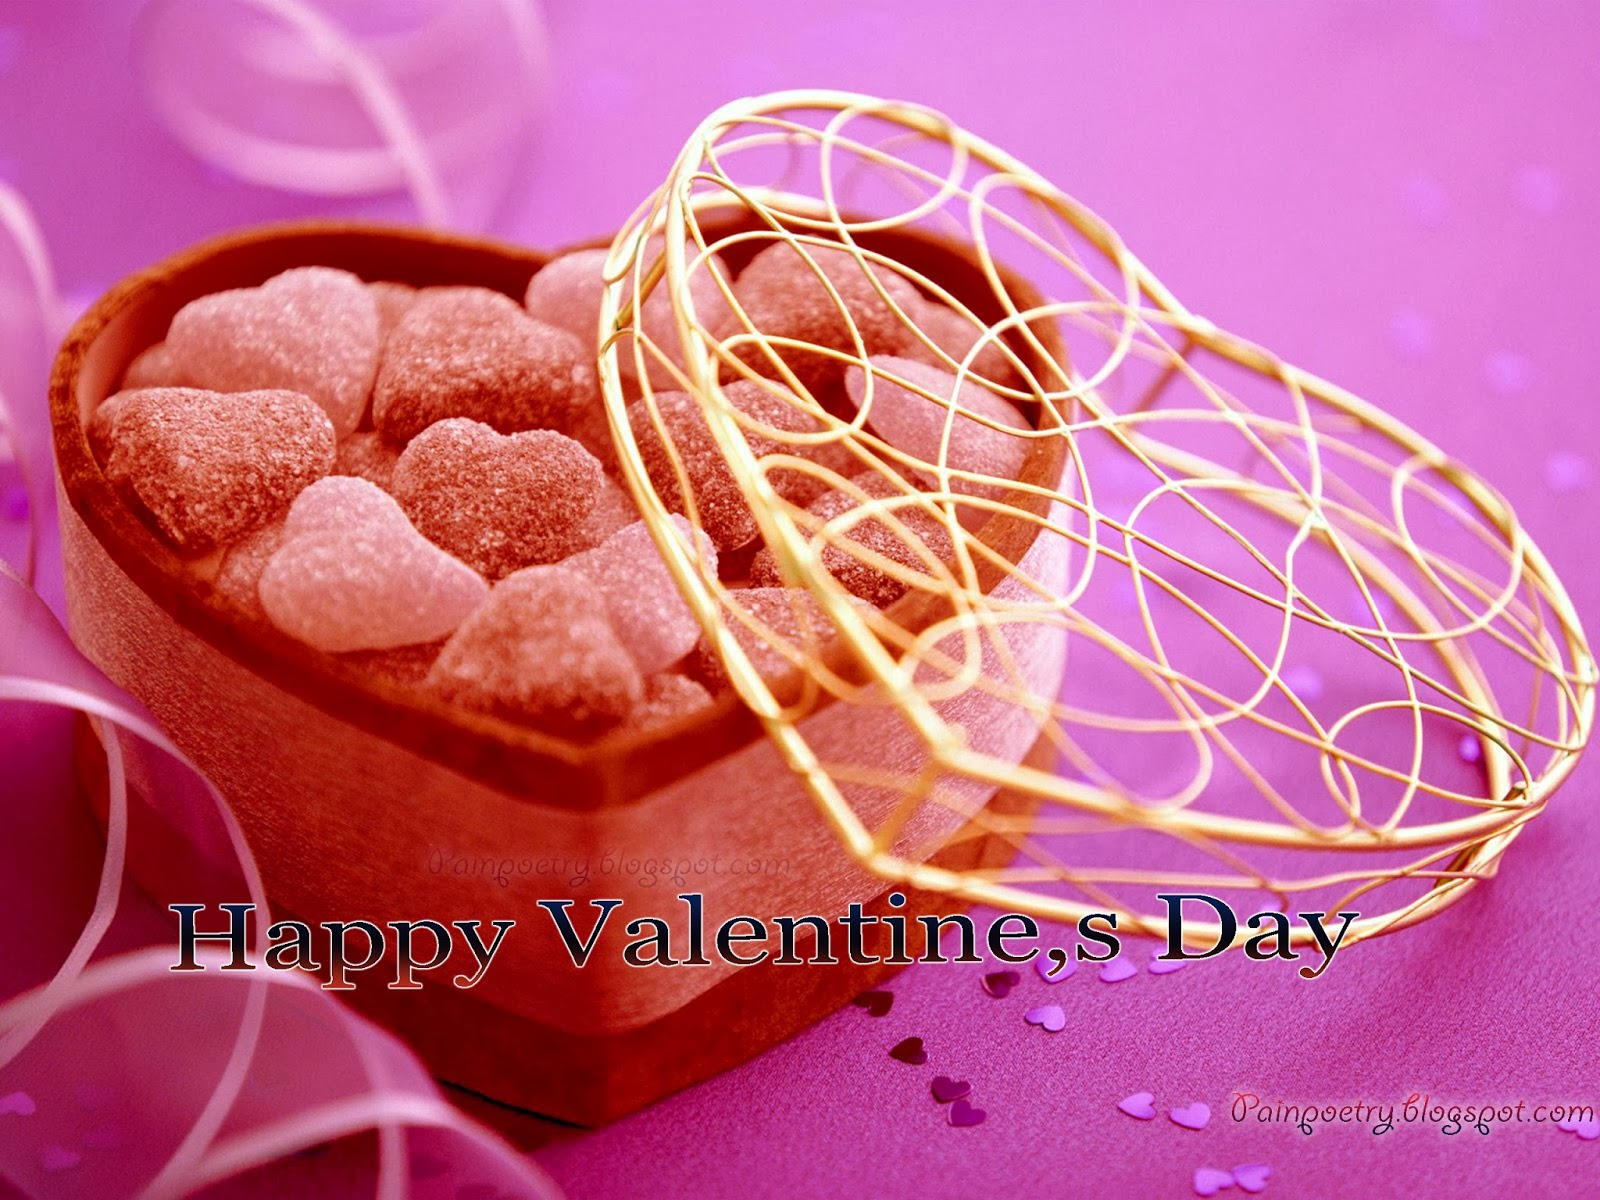 Happy-Valentines-Day-Special-Gift-Of-Sweets-For-Family-Members-HD-Wide